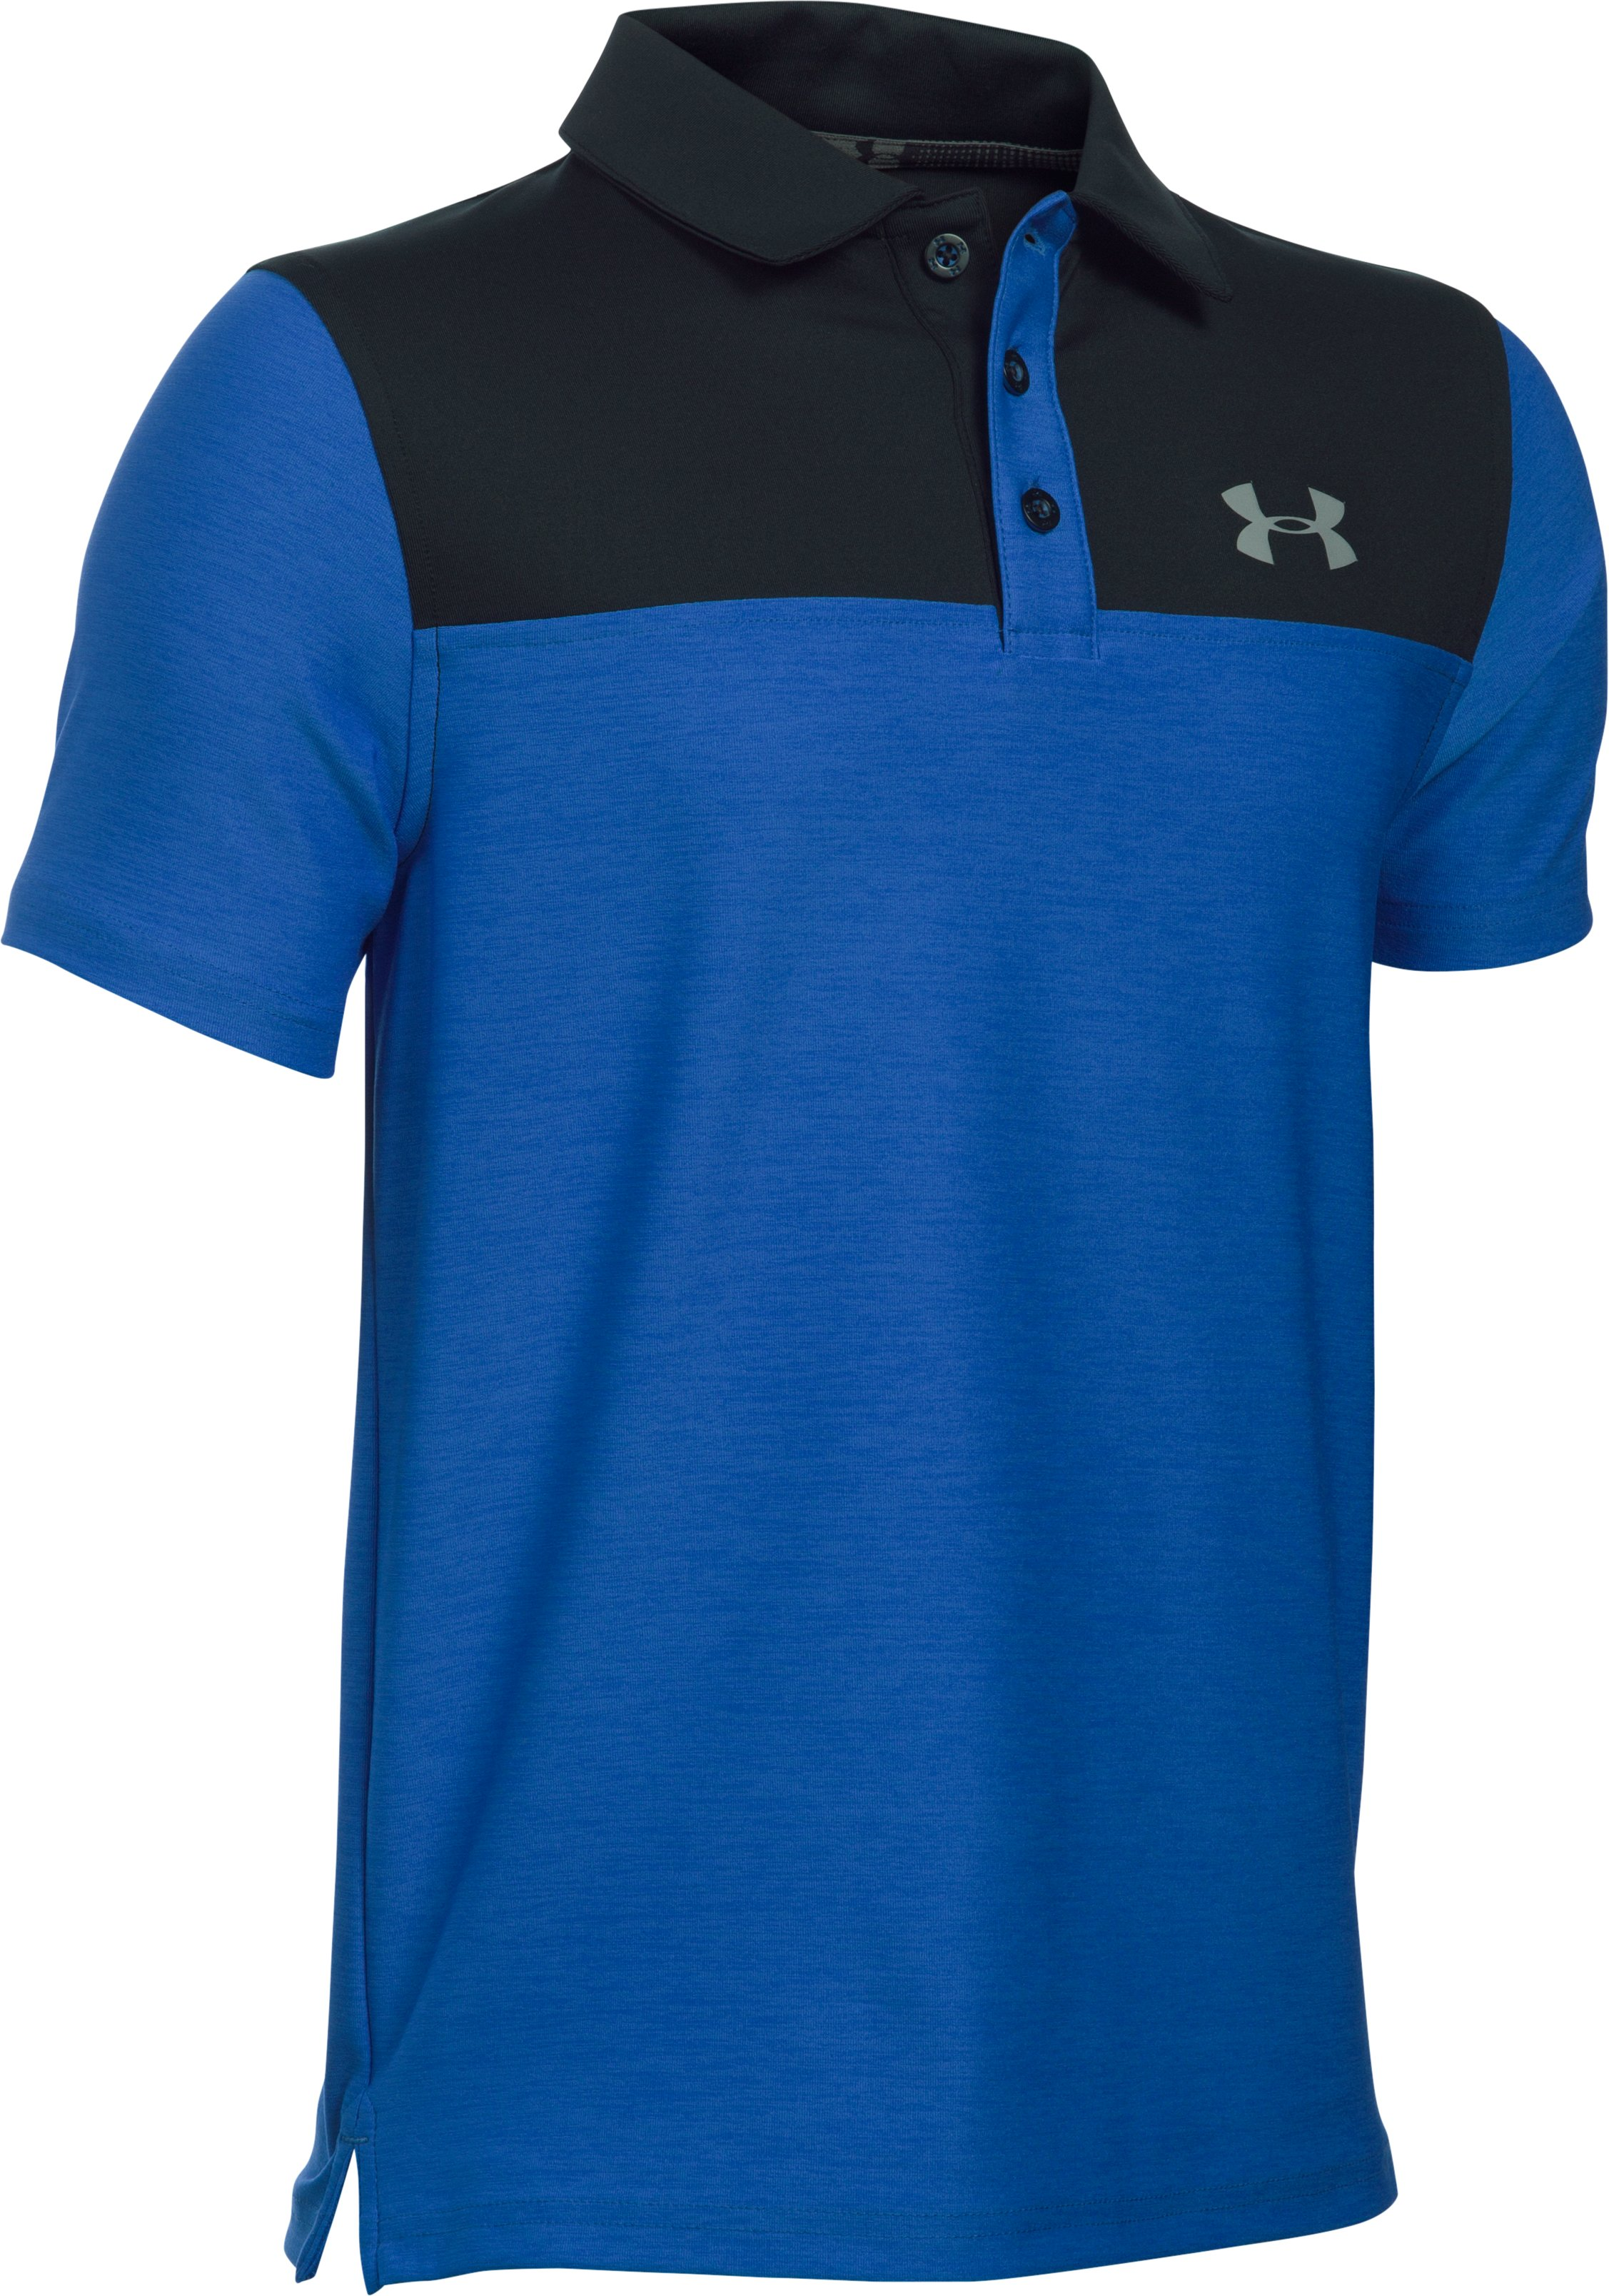 Boys' UA Match Play Blocked Polo , ULTRA BLUE, zoomed image